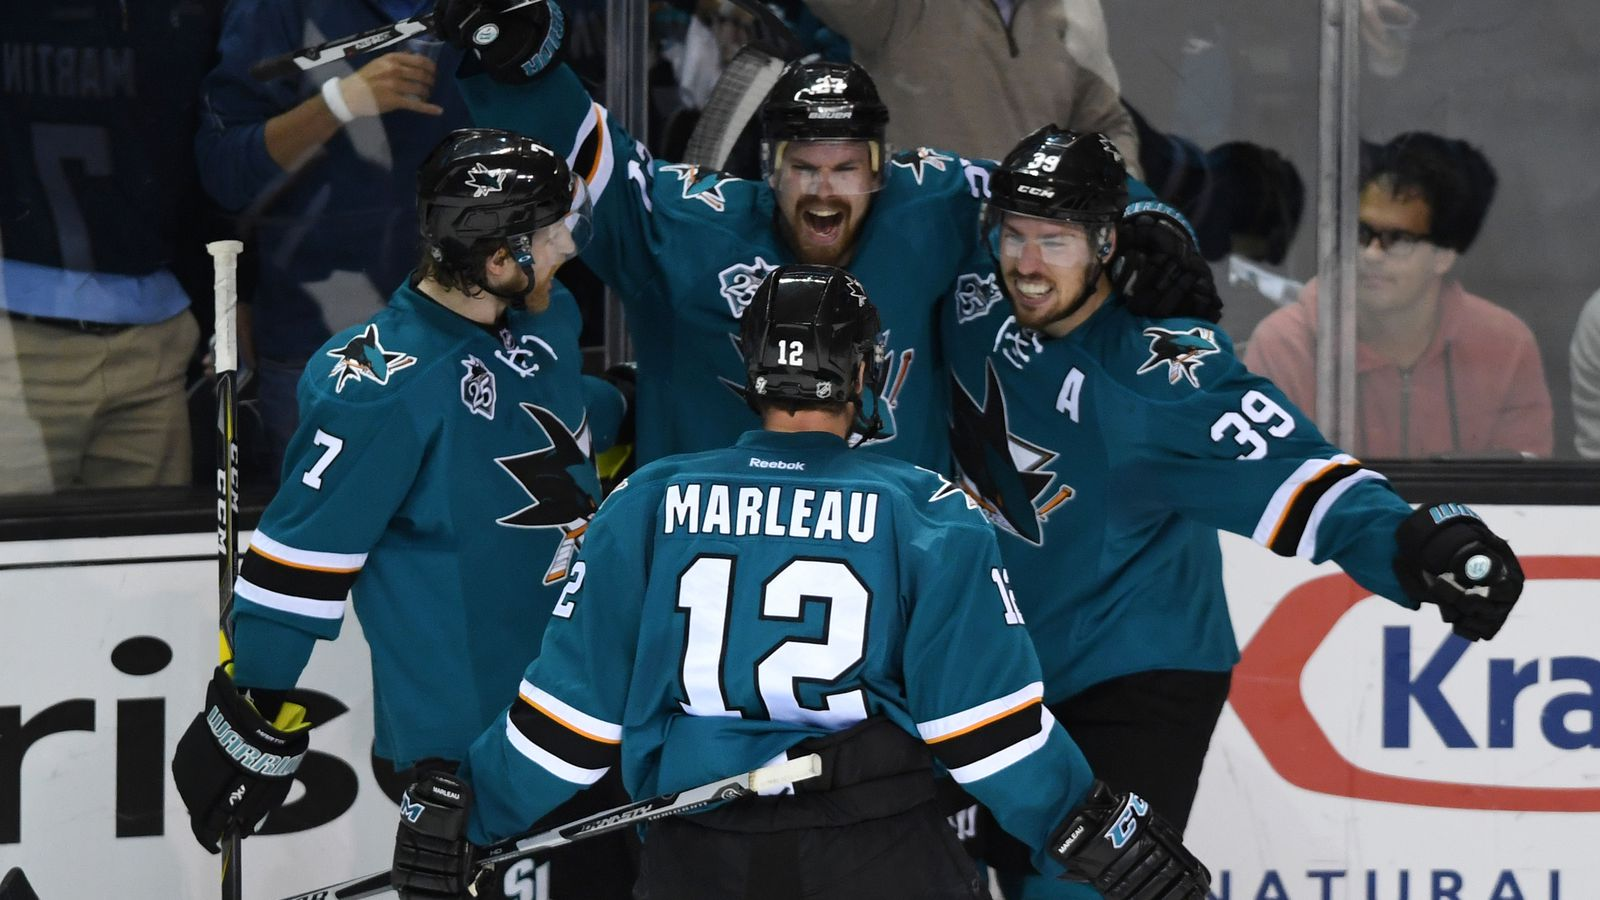 Seattle Thunderbirds' Teal Stanley Cup Ties - Sonics Rising